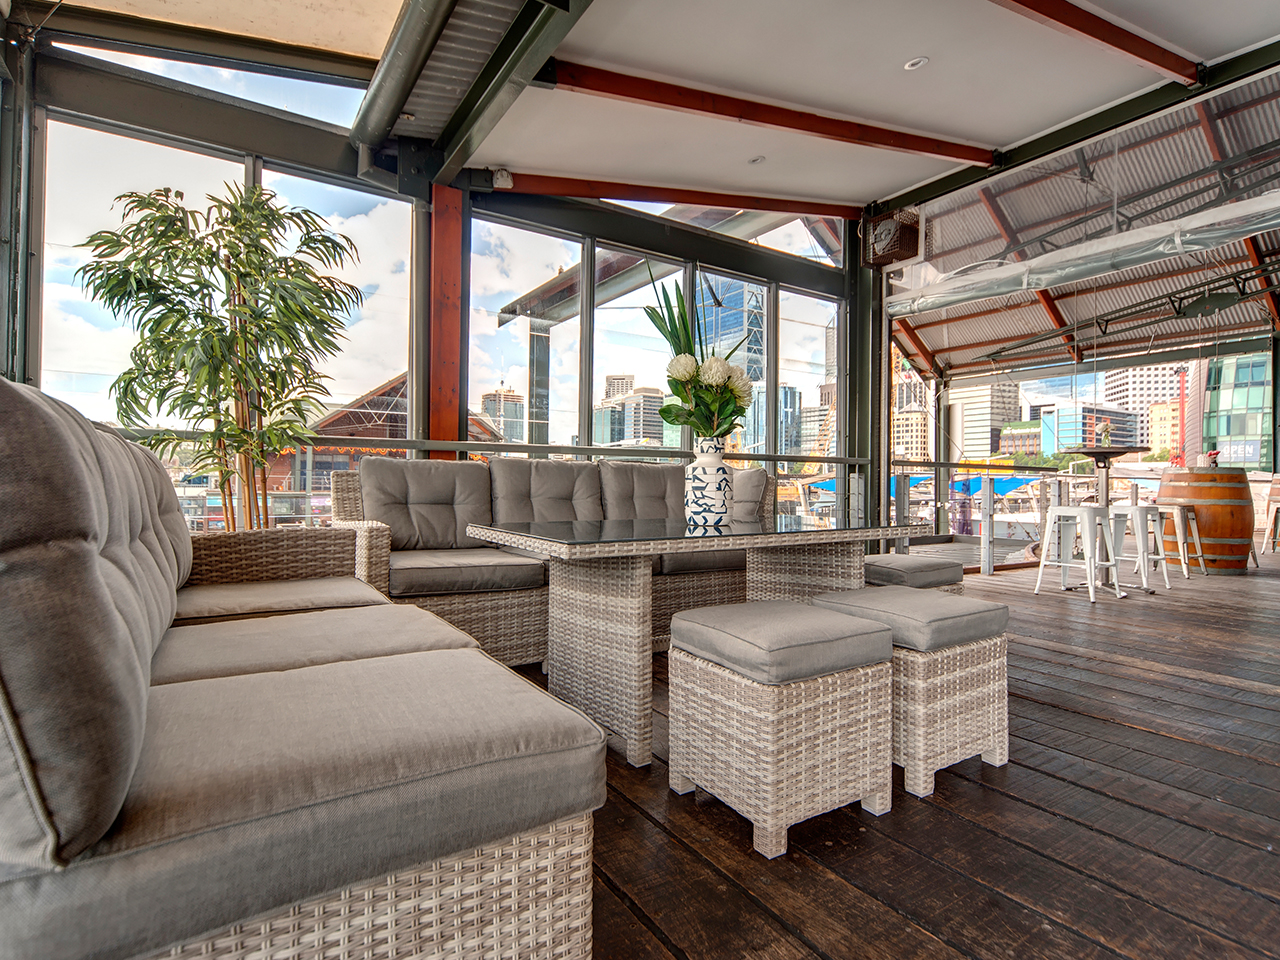 Perth Function Venue With Relaxing Chairs And Table Inside The Function Room Fronting The Balcony